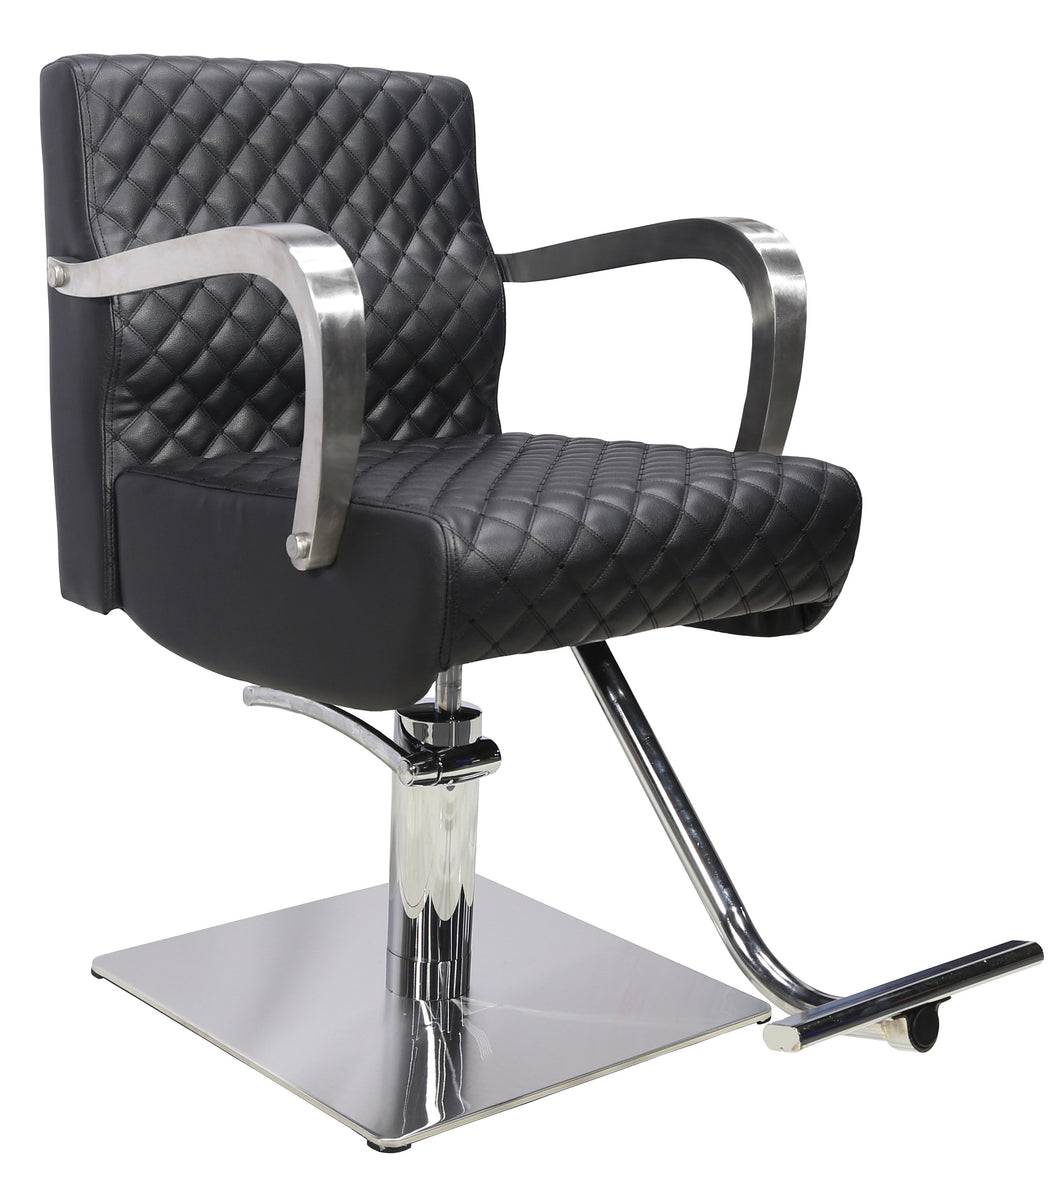 Model 623 Contemporary Styling Chair With Ultra Stable Stainless Steel Base